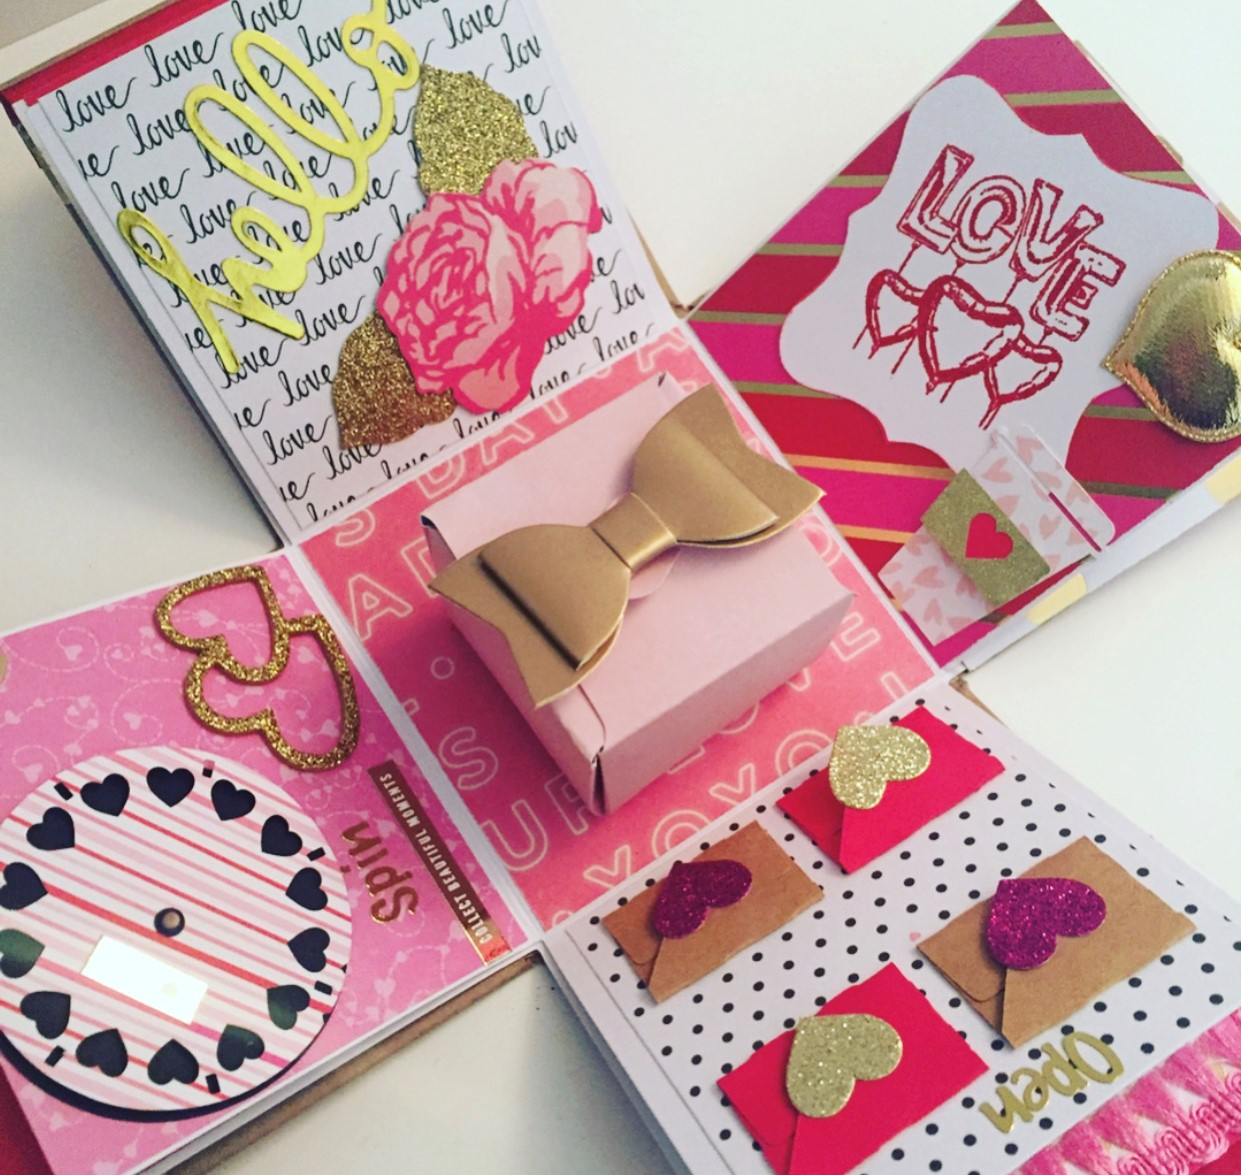 The traditional chocolate and flowers on Valentine's Day can be seen as generic but creating gifts with a personal touch will make a larger impact.